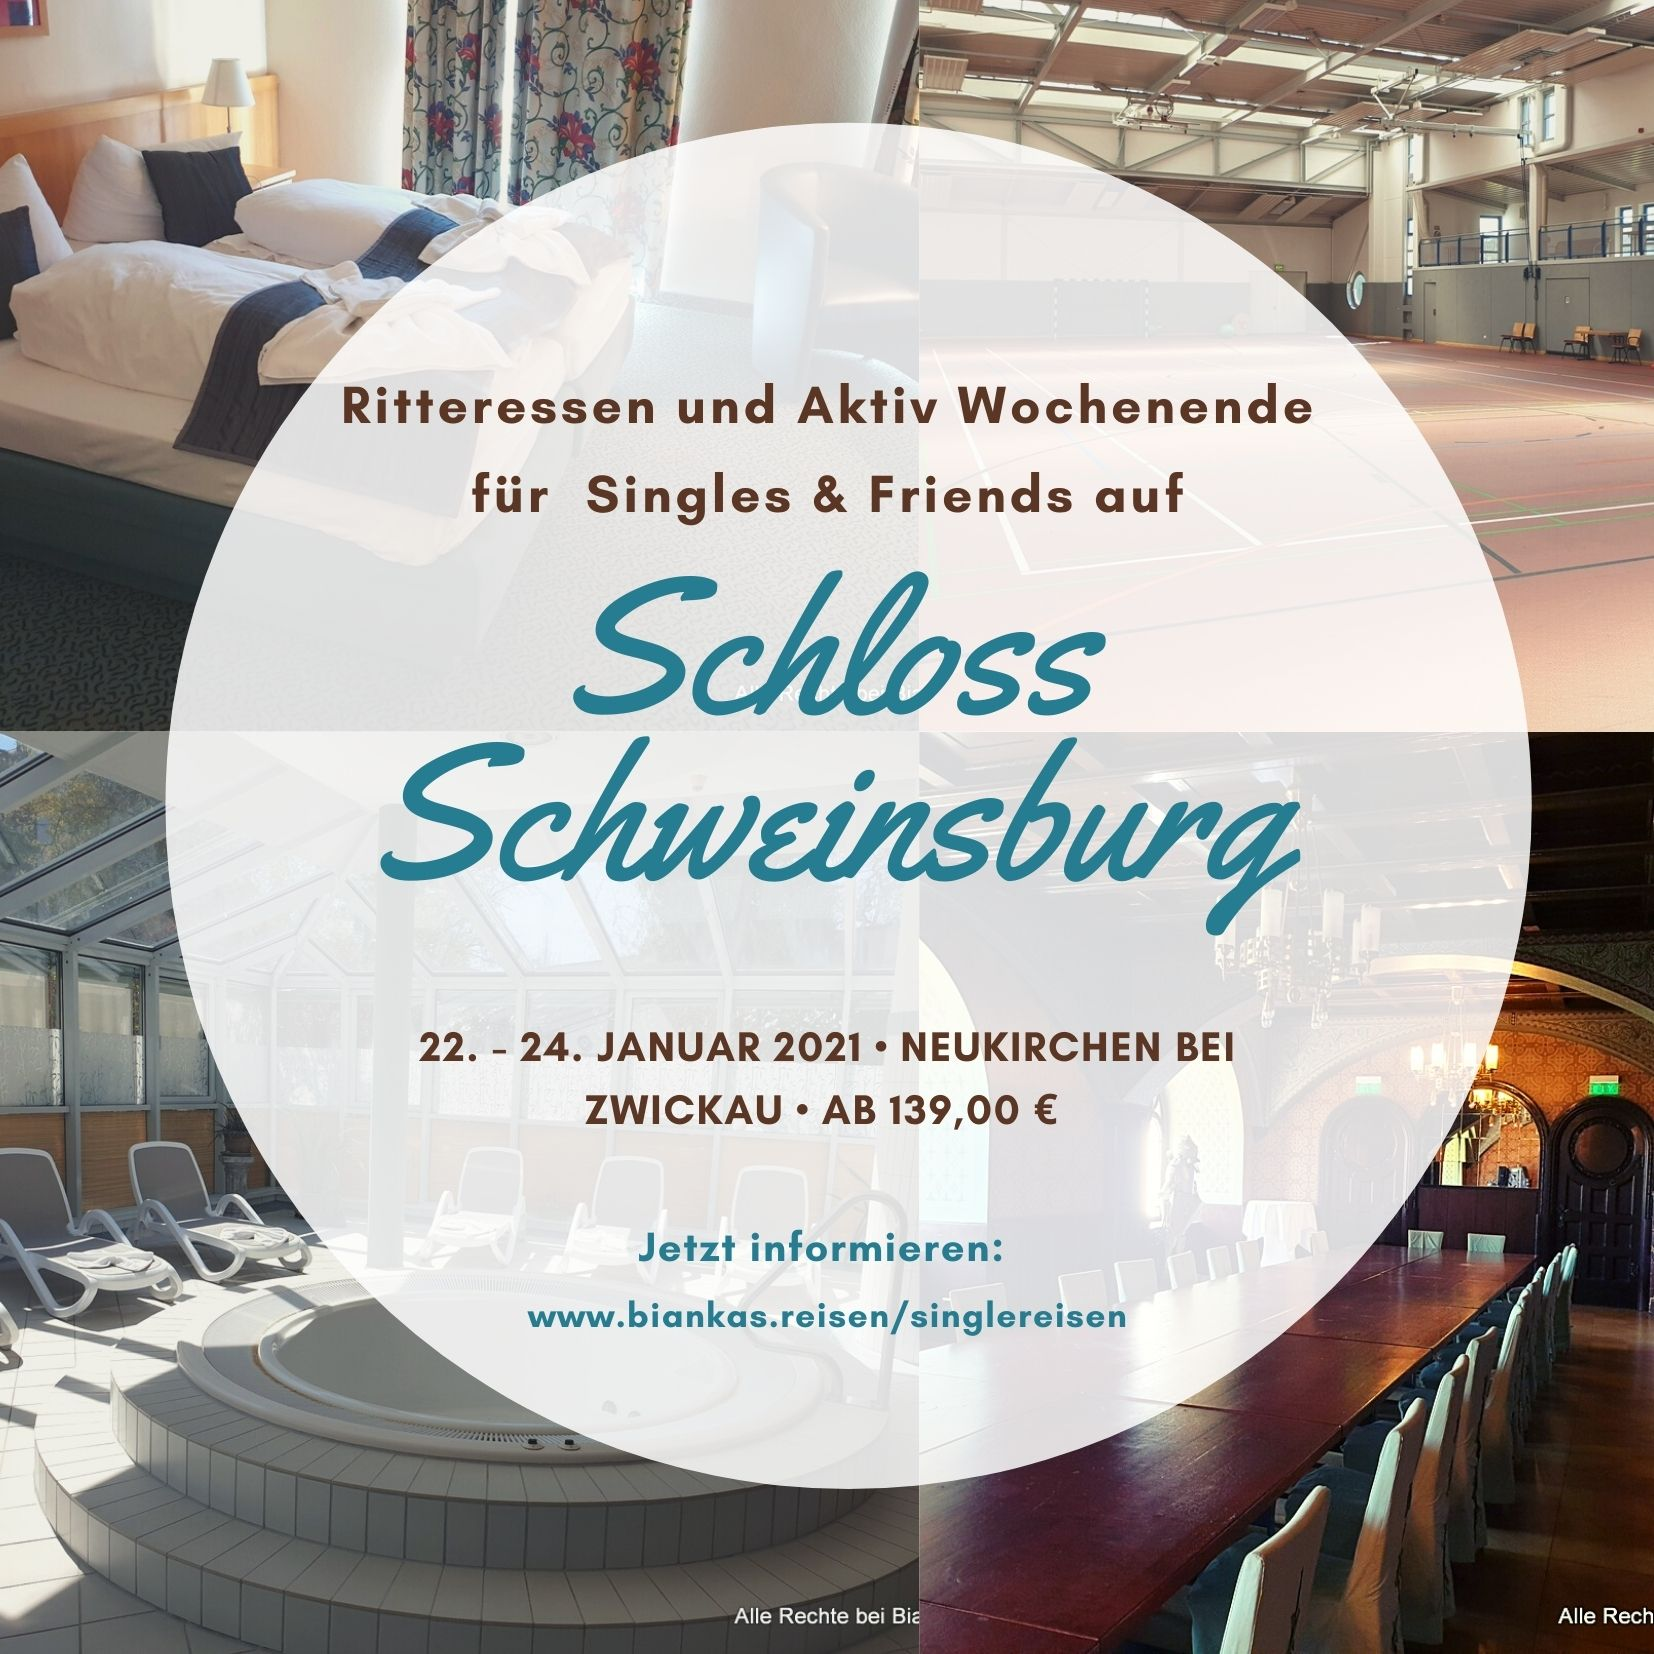 >> Single Weekend Schloss Schweinsburg